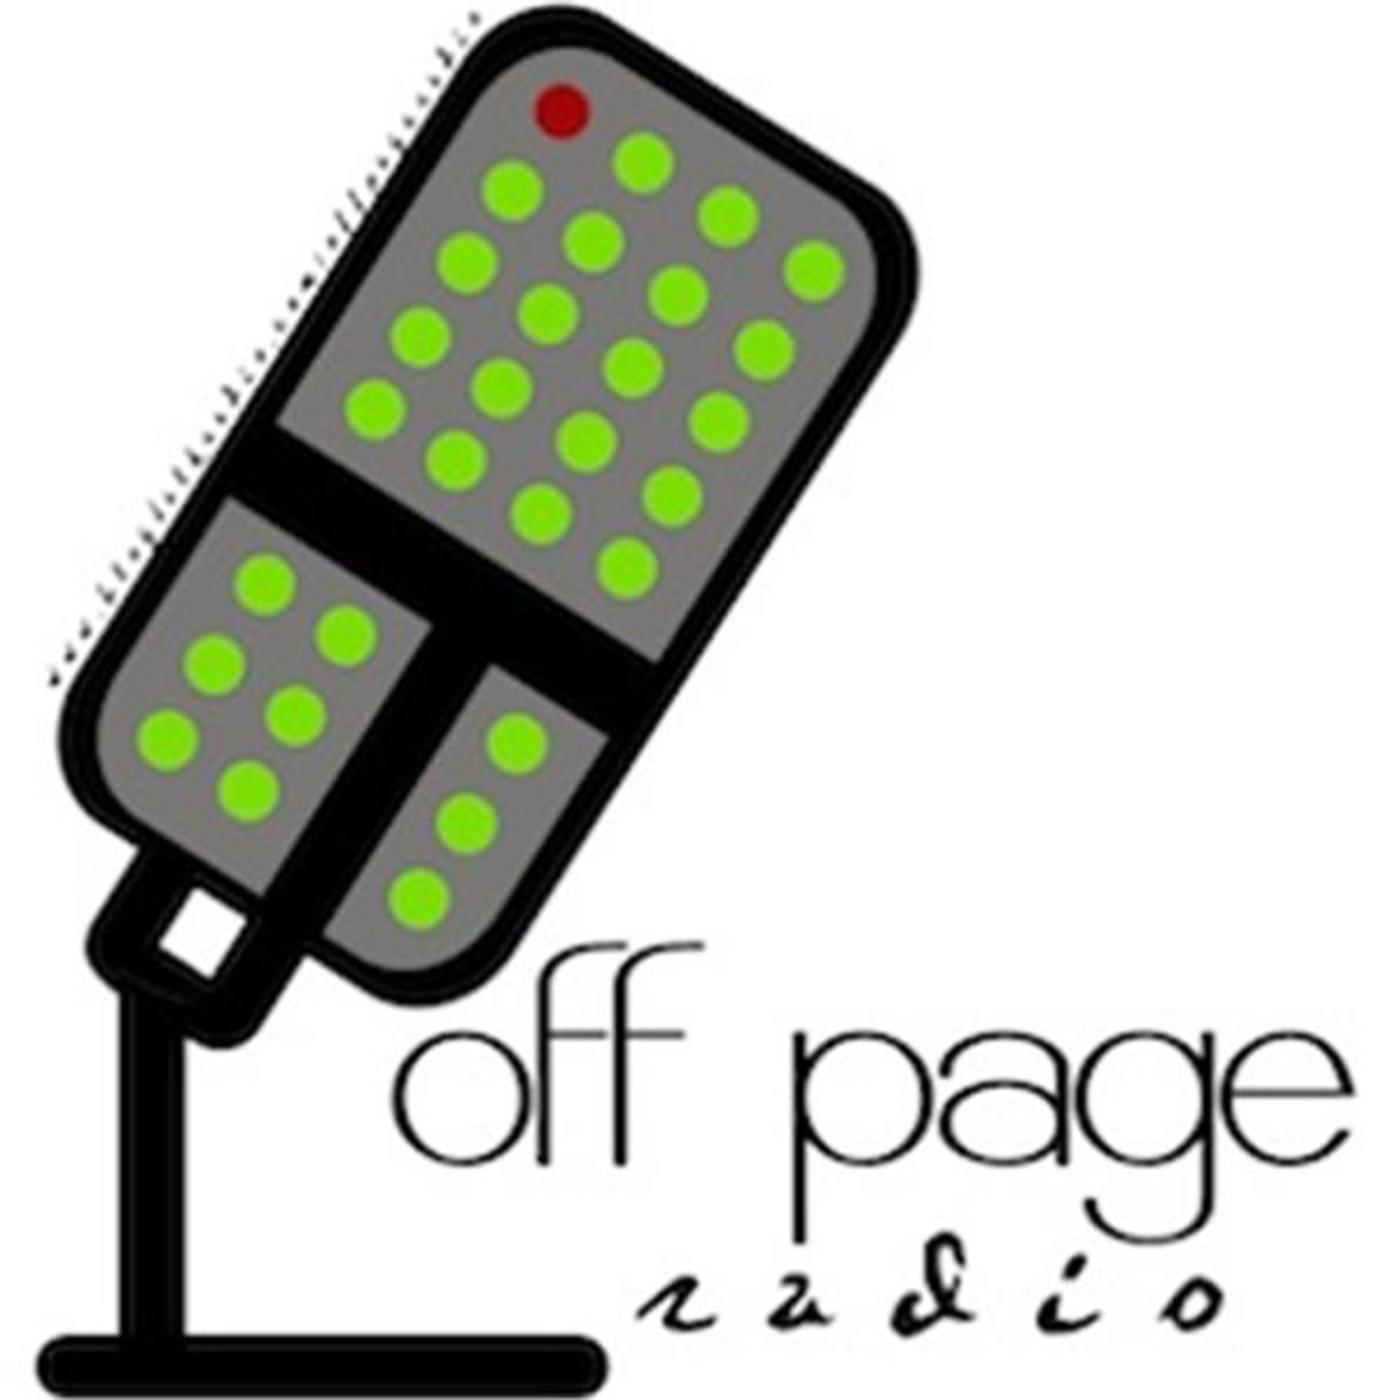 OffPageRadio